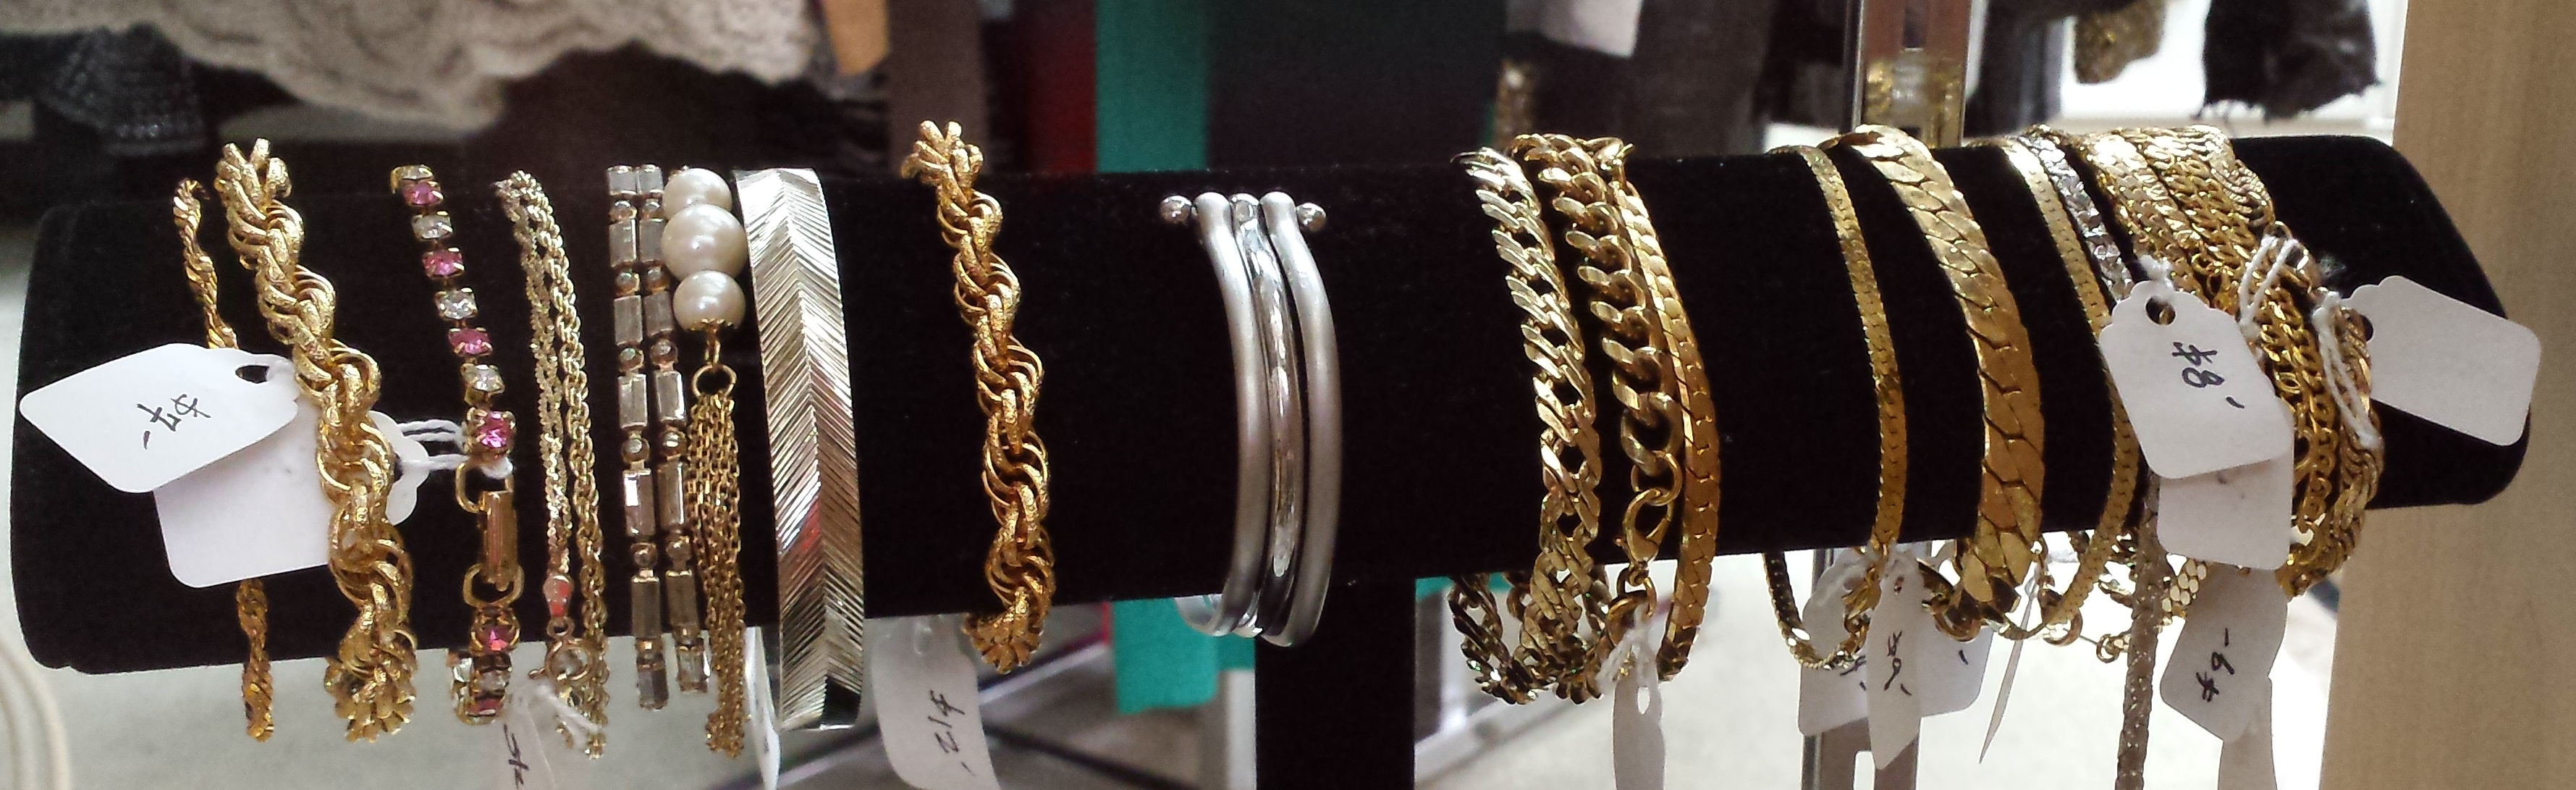 Come Browse - We have a big selection of bracelets and necklaces